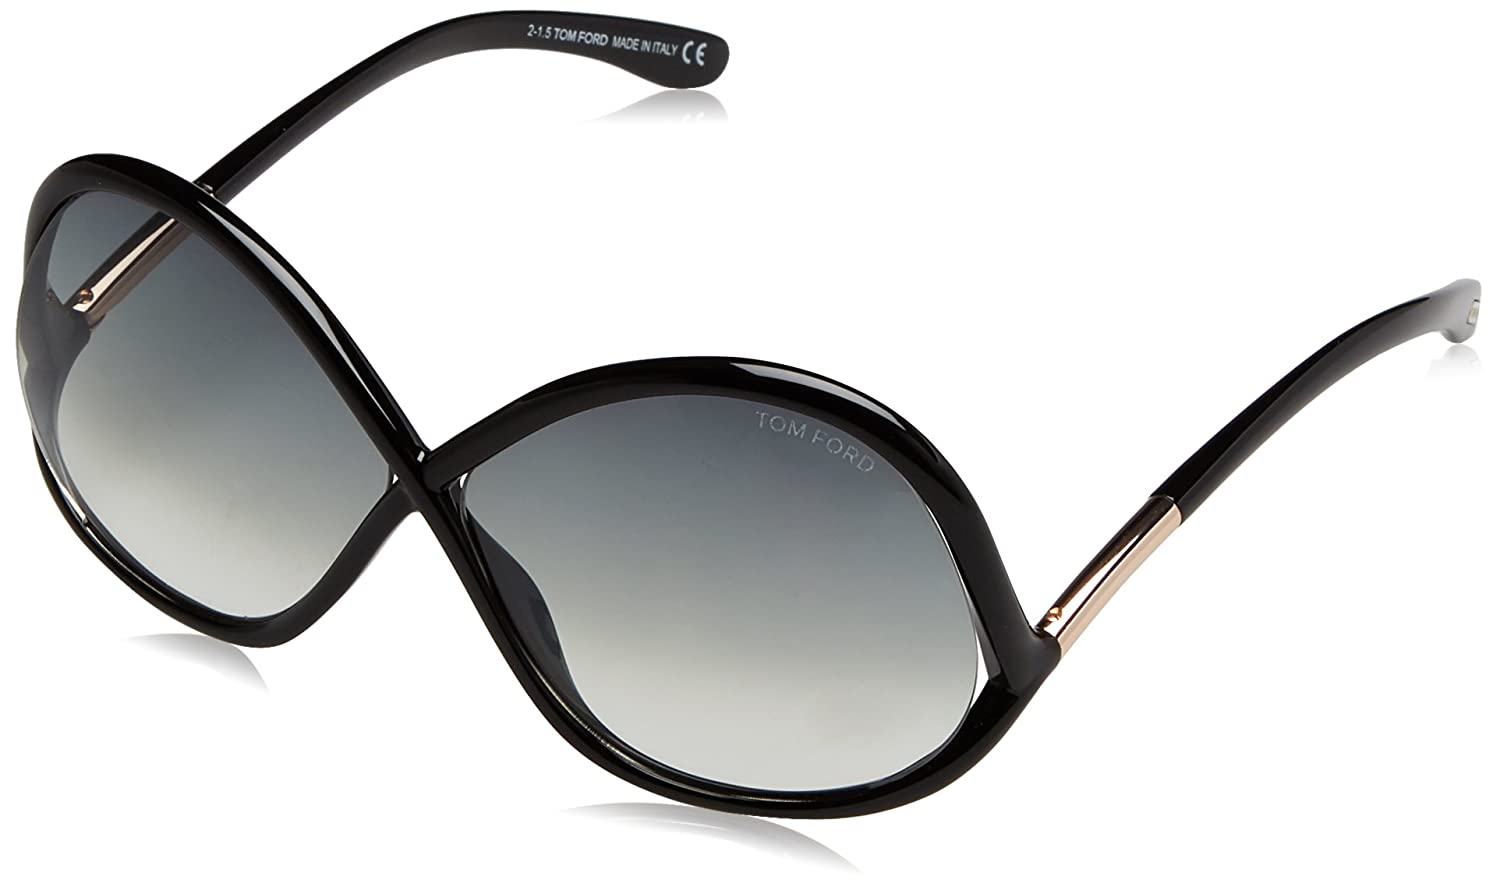 5087dbb5493a7 Tom Ford FT0372 01B Black Ivanna Butterfly Sunglasses Lens Category 2 Lens  Mirr at Amazon Men s Clothing store